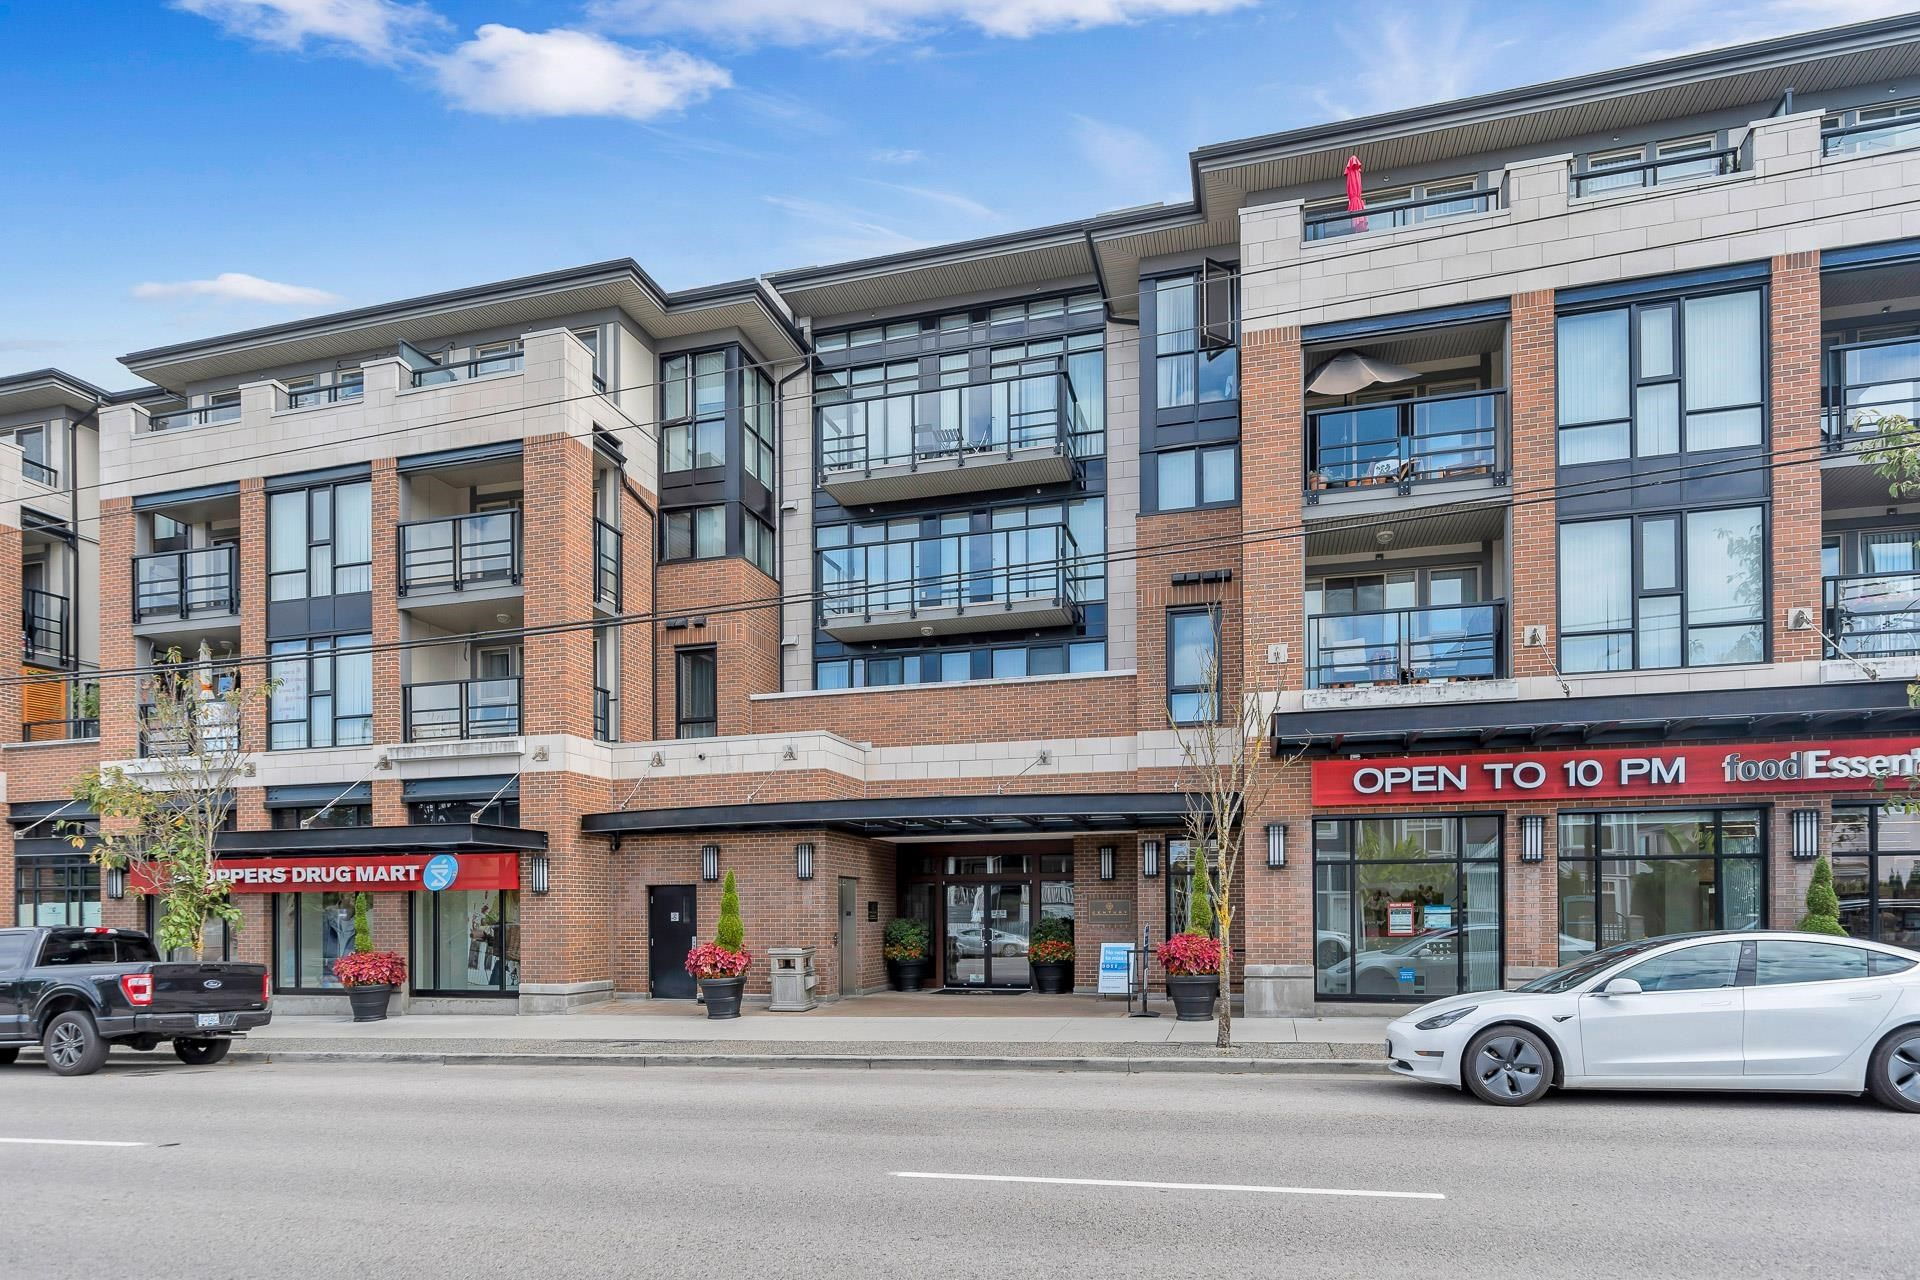 """Main Photo: 423 4550 FRASER Street in Vancouver: Fraser VE Condo for sale in """"Century"""" (Vancouver East)  : MLS®# R2614168"""